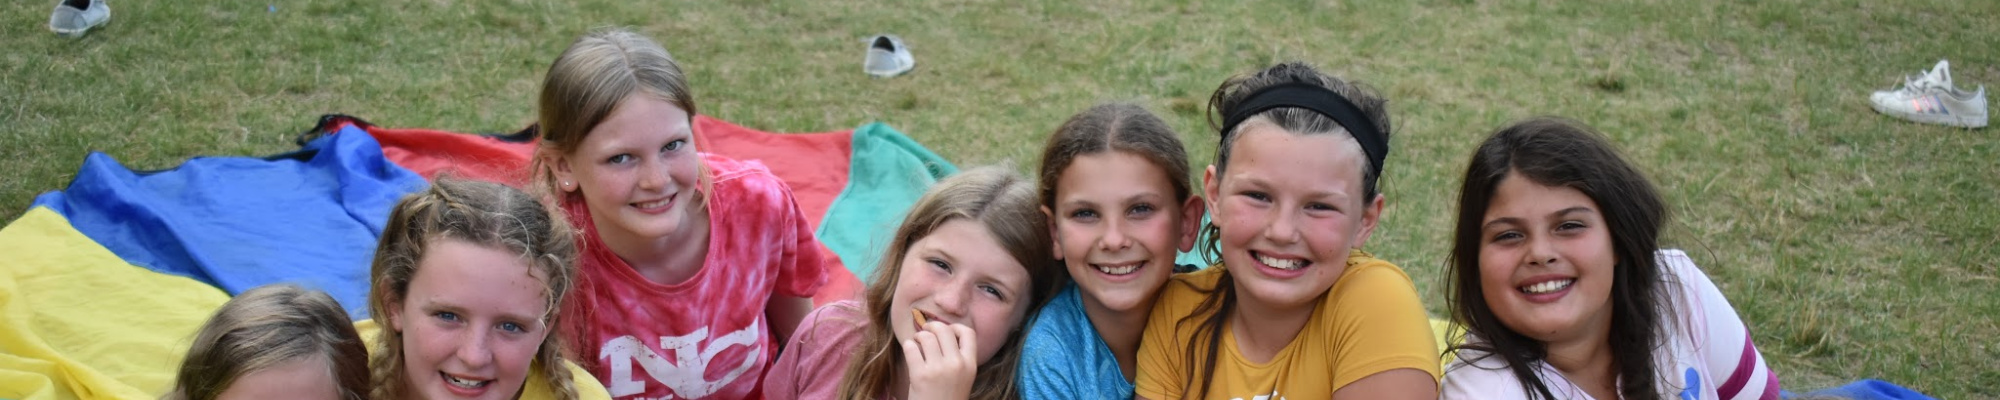 Young girls lined up, camping together and building friendships